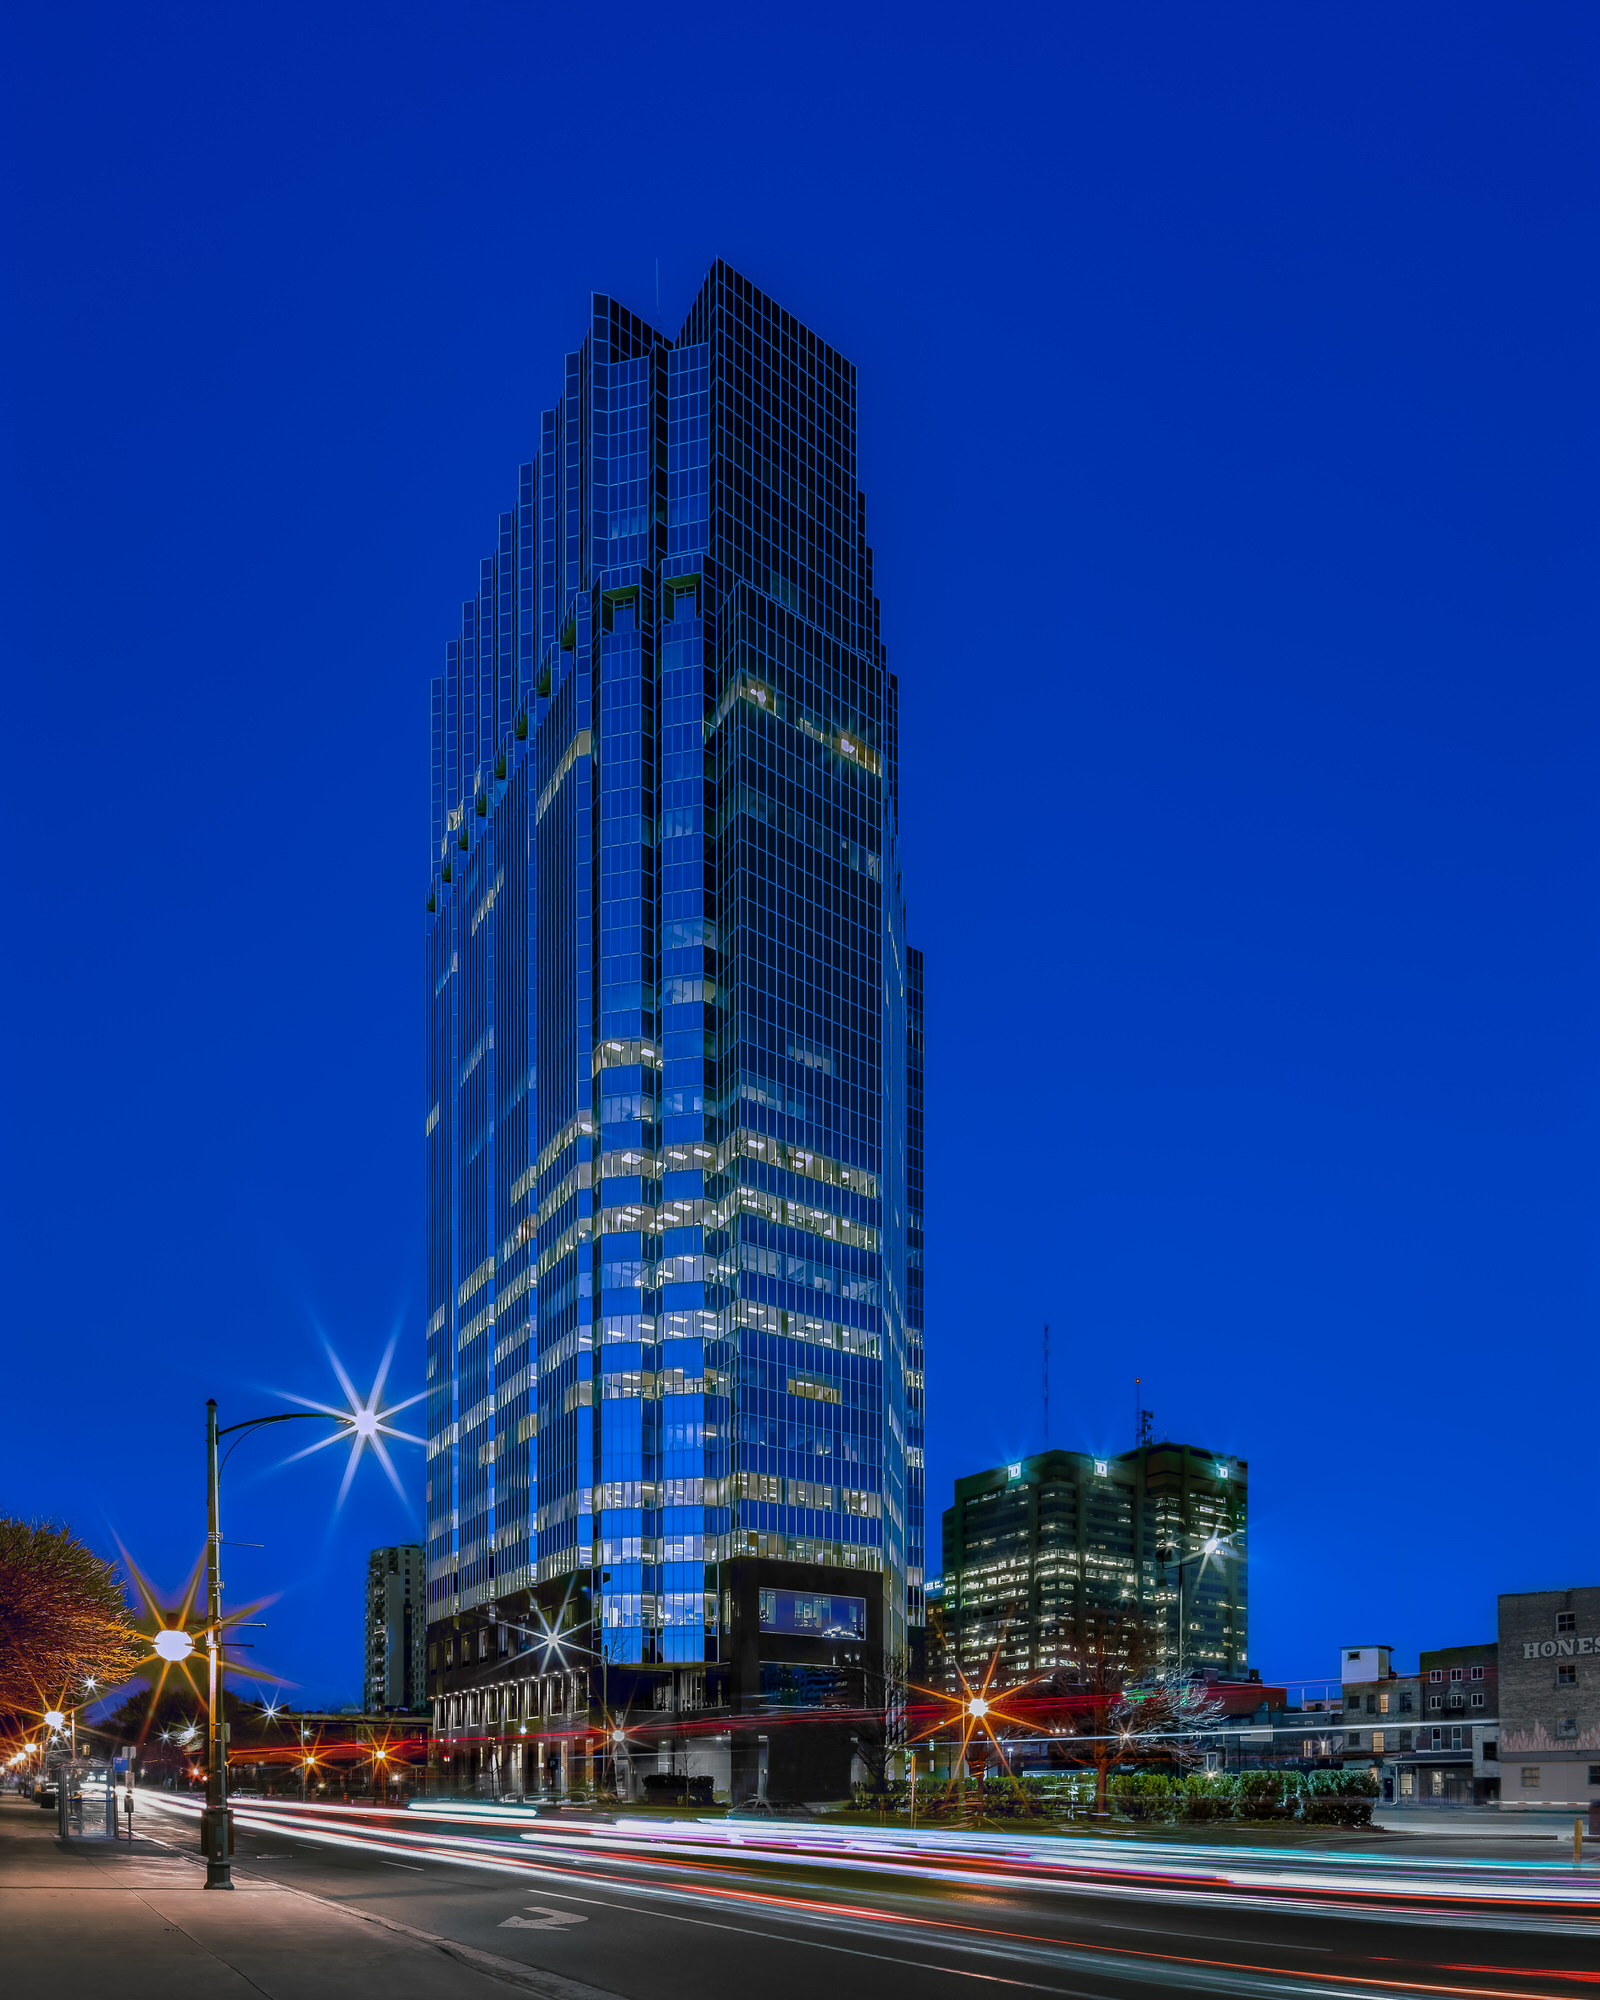 Photo of 1 London Place in Downtown London at night